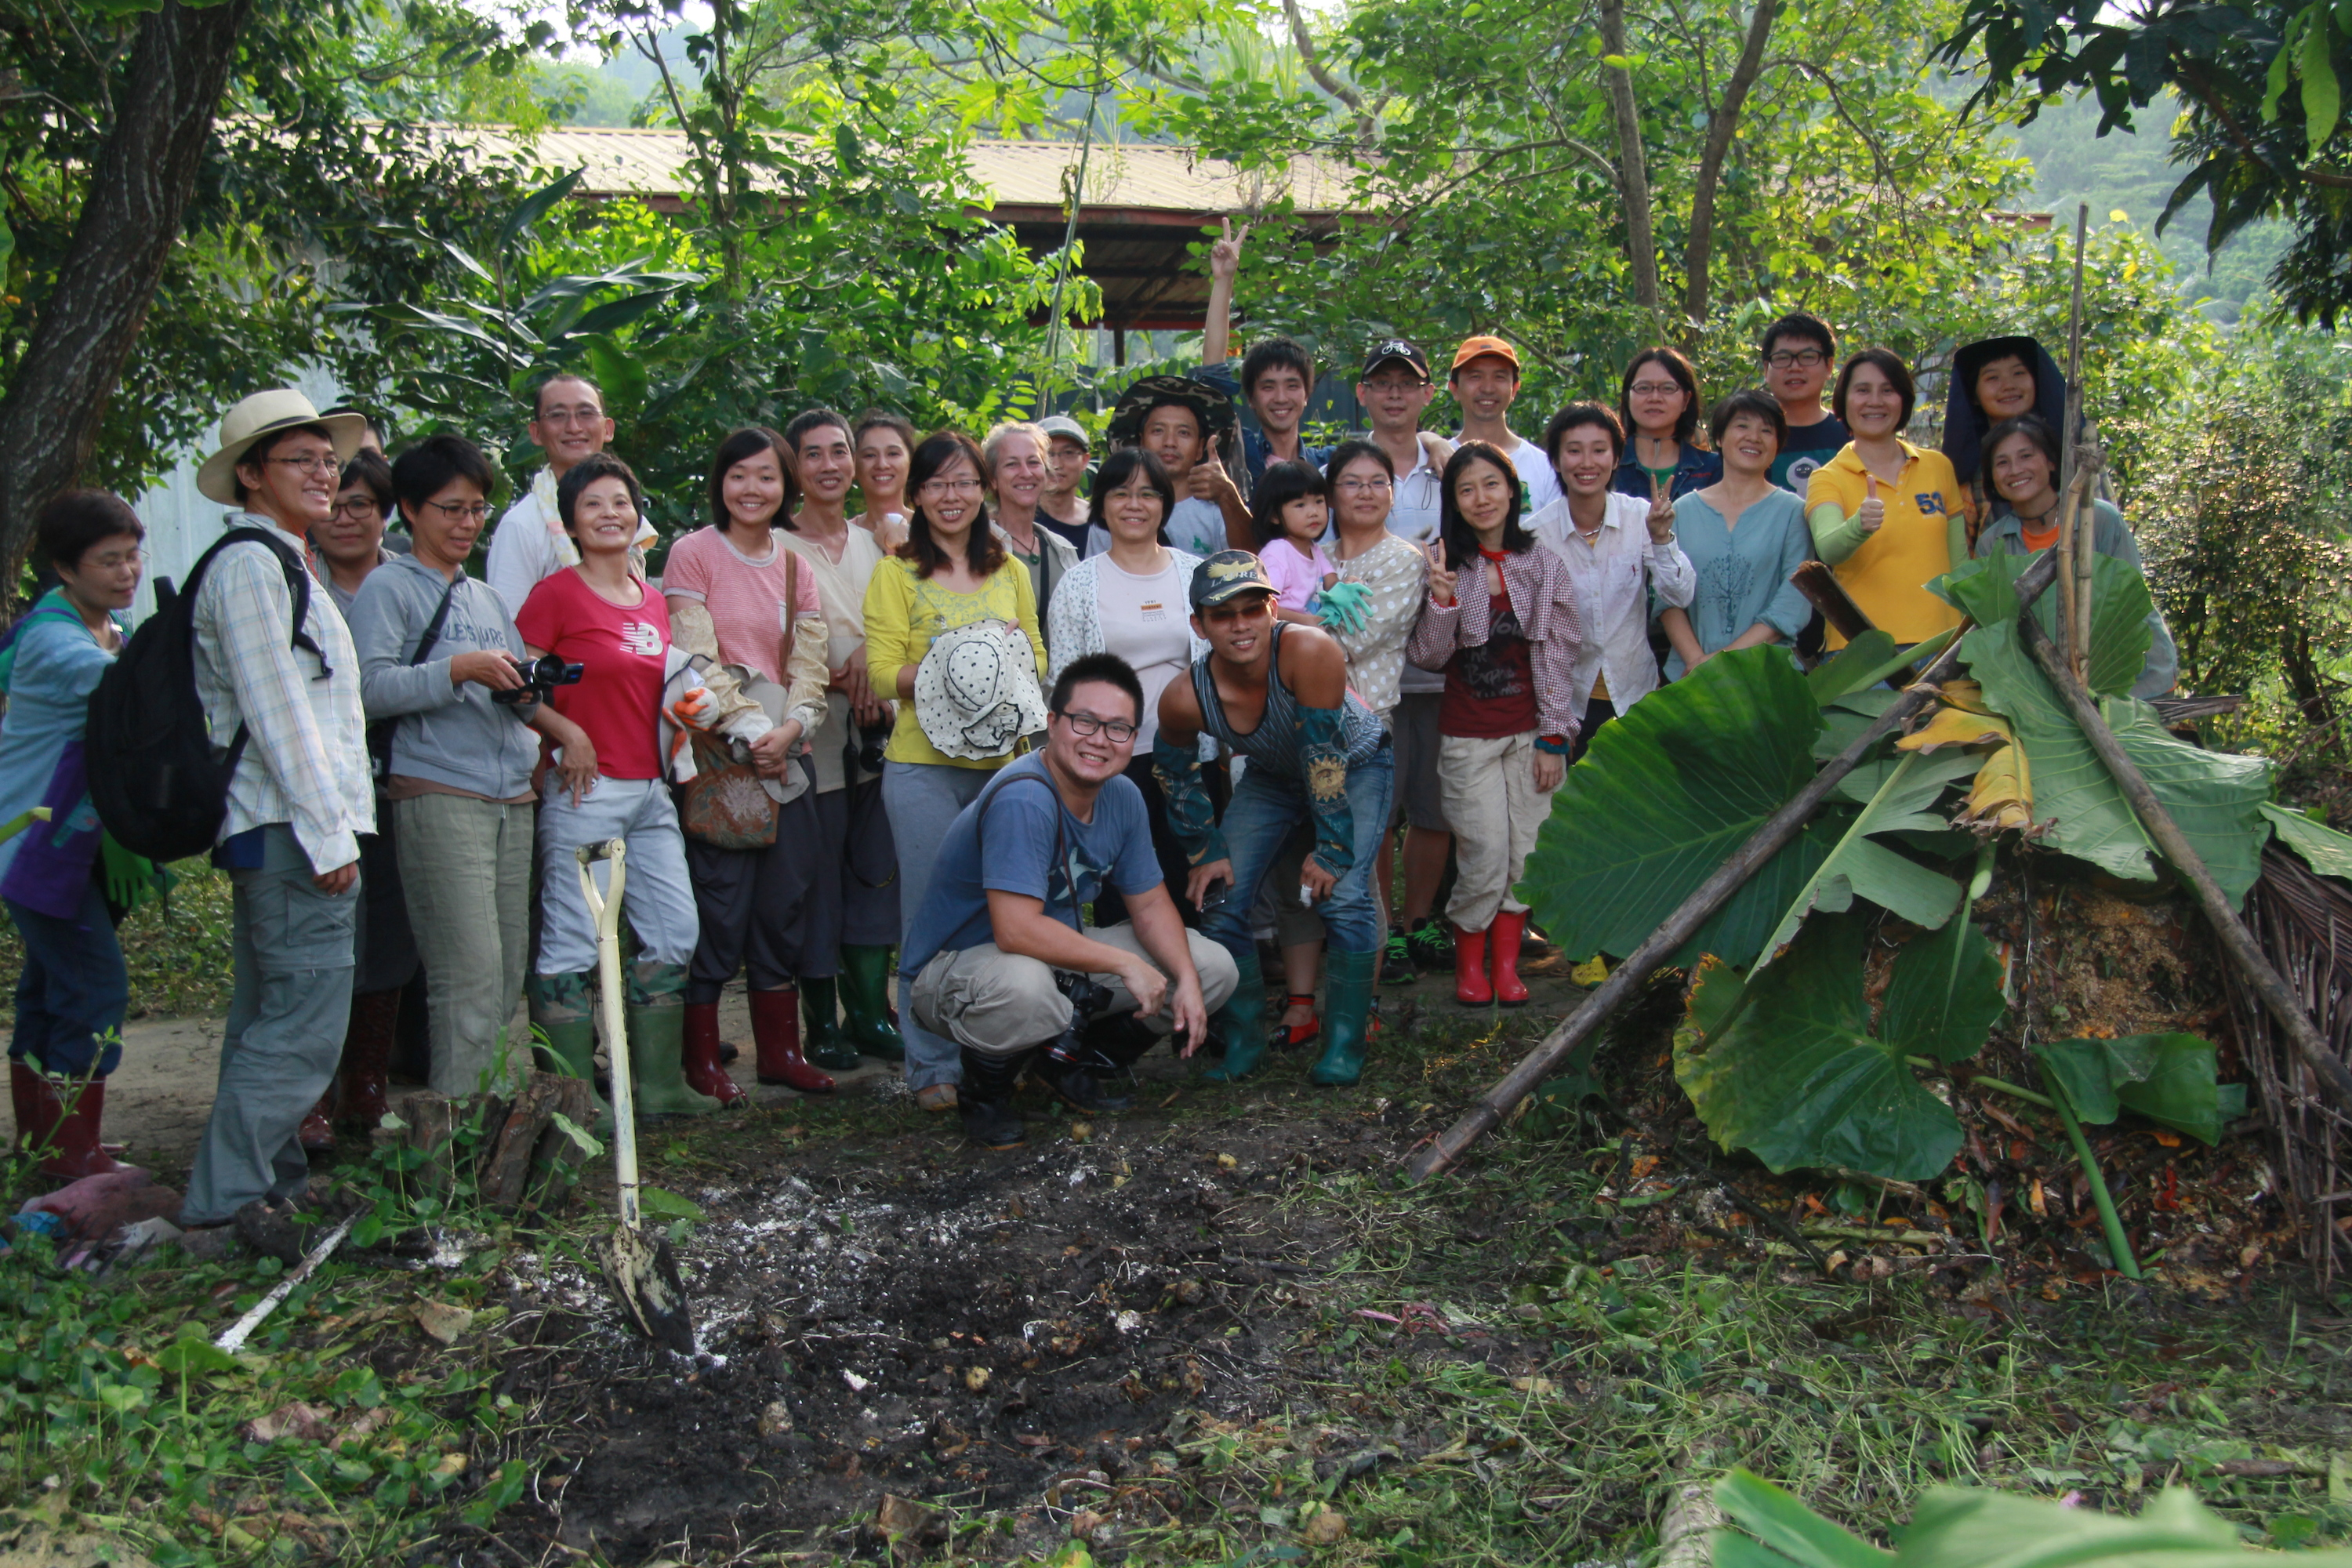 Permaculture Design Course participants